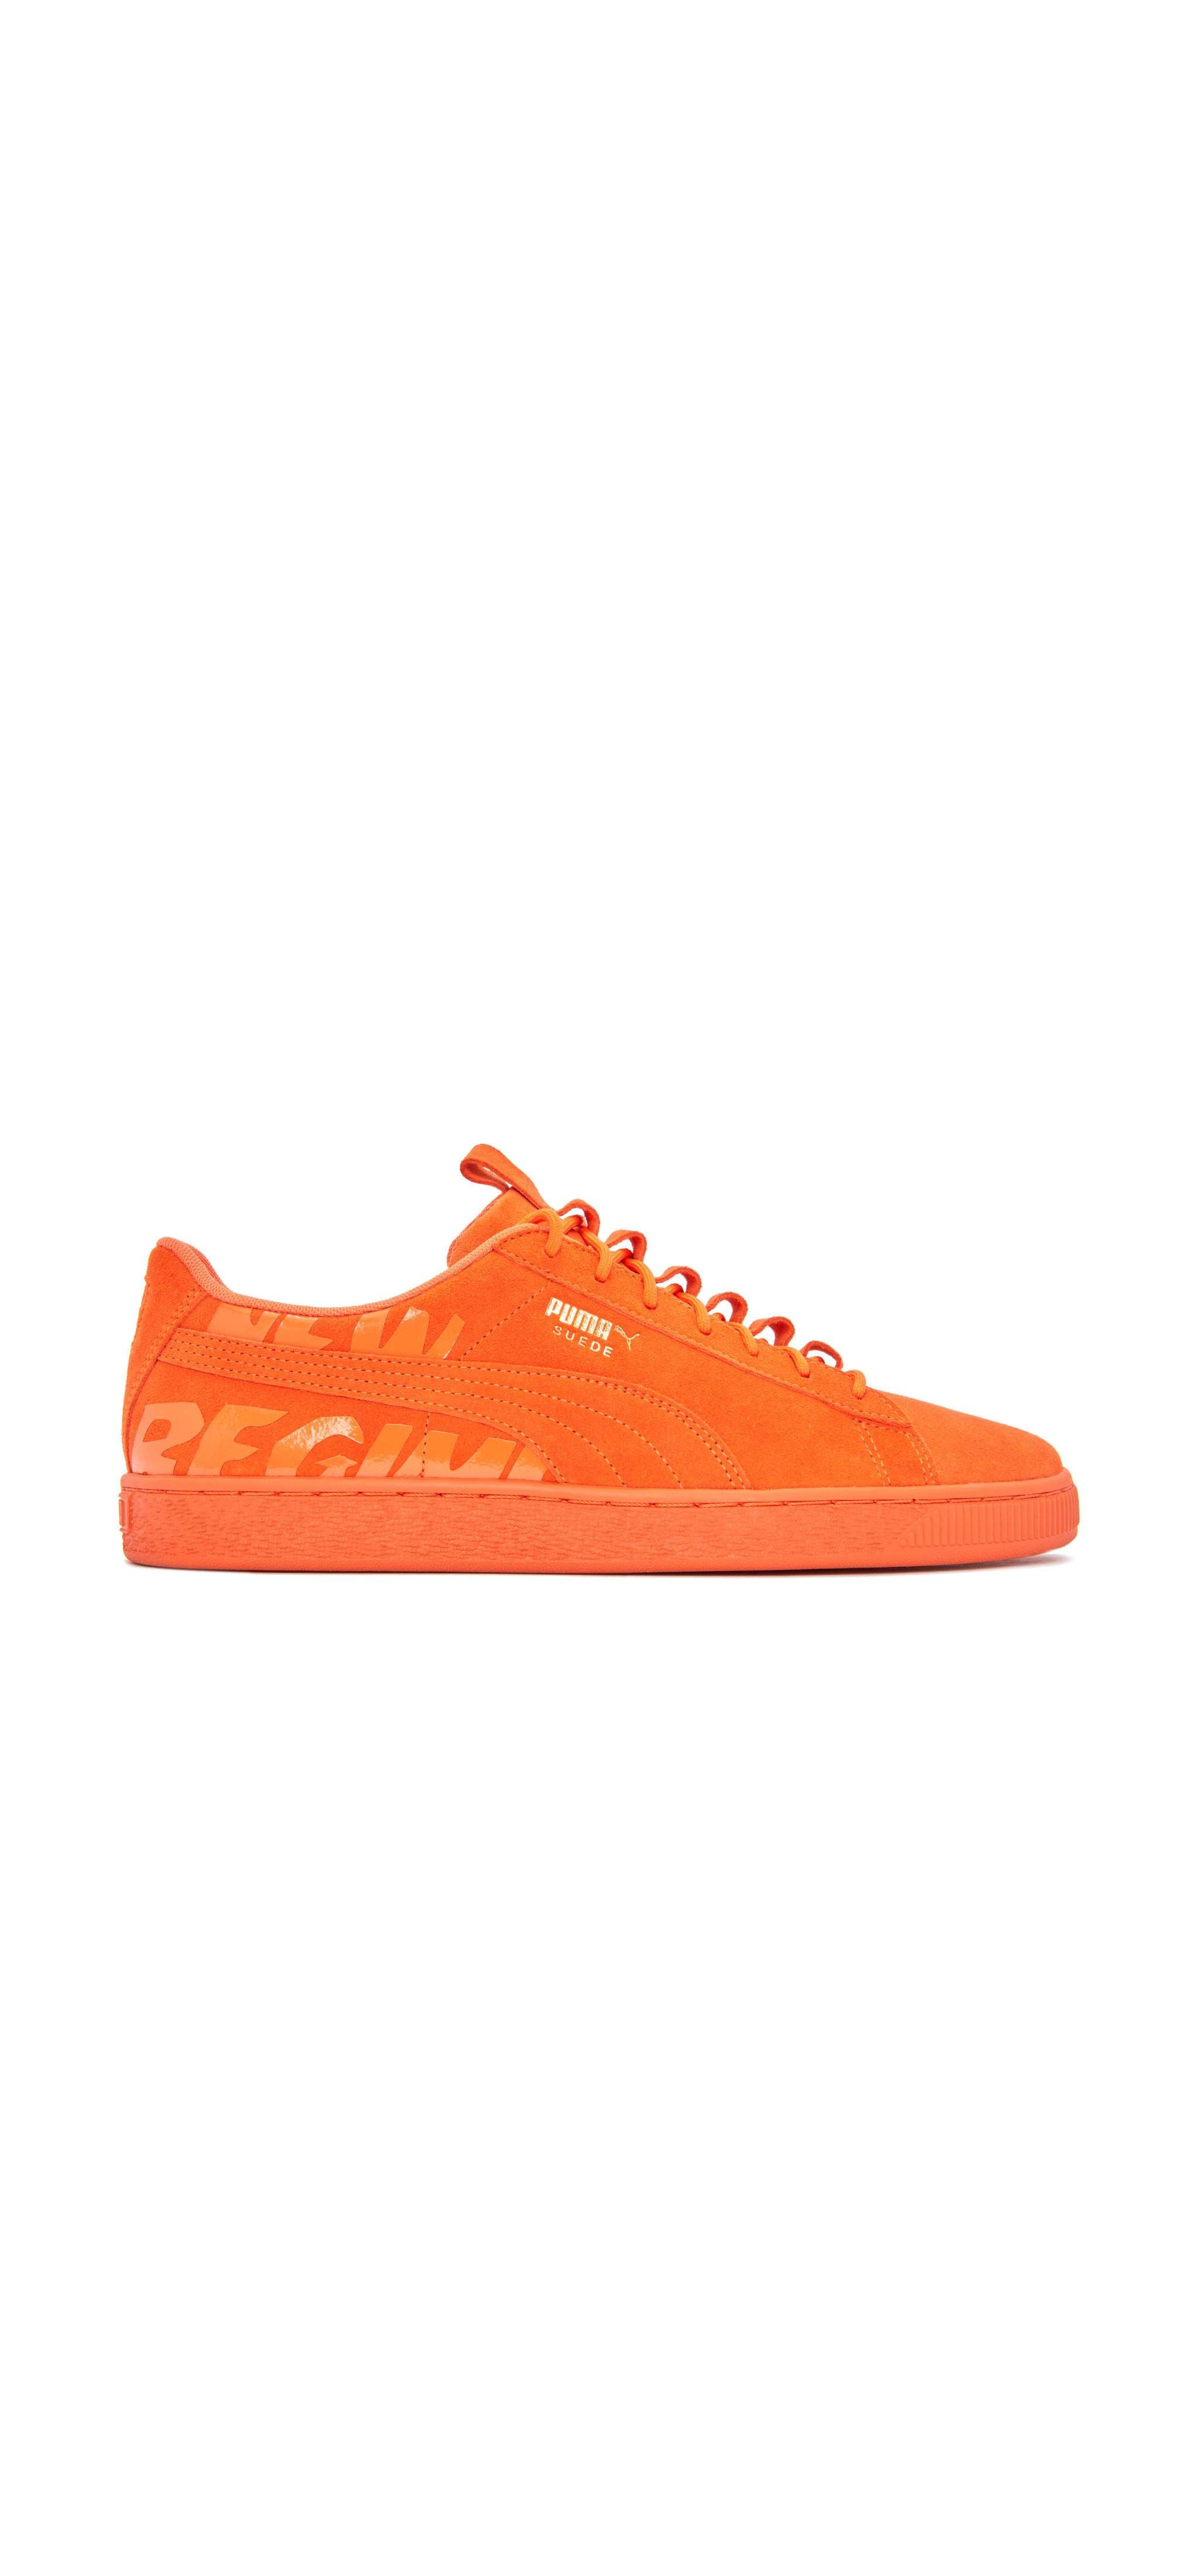 295c7033feb82 ... ANR iteration of the Classic Suede features a winterized court  silhouette with a smooth tonal suede upper, large rubberized signature NEW  REGIME graphic ...